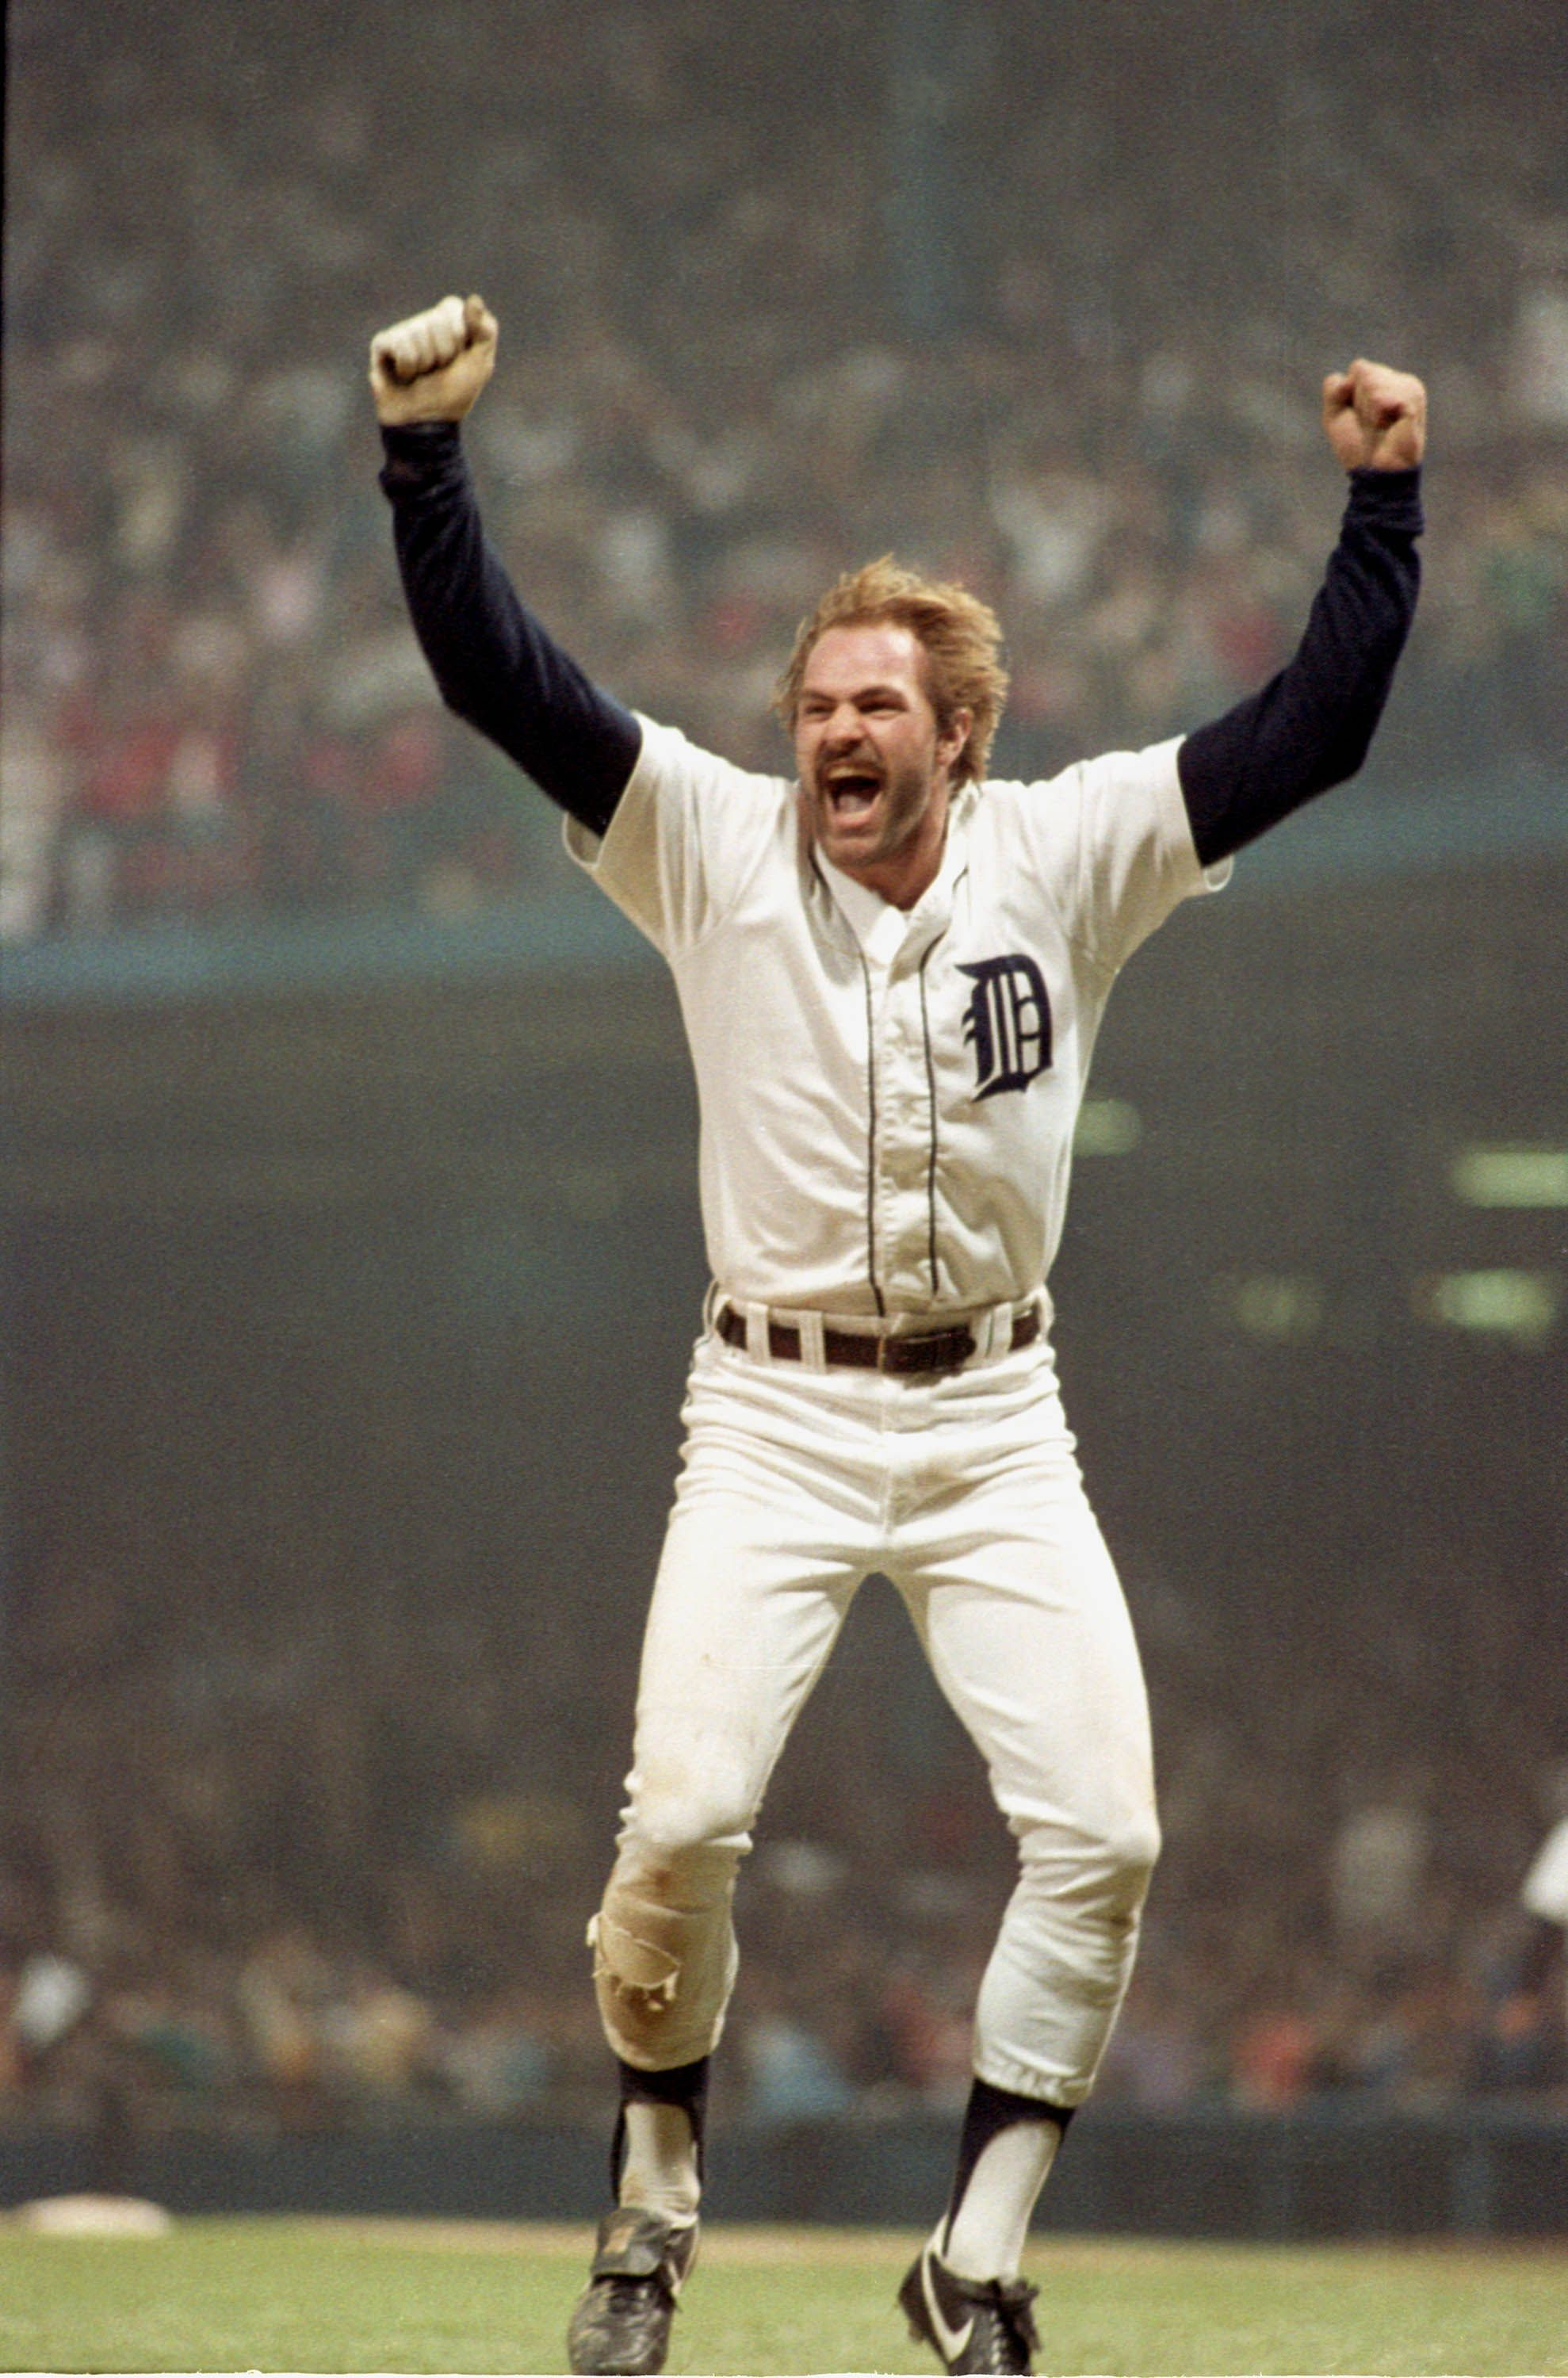 Detroit Free Press photographer Mary Schroeder captured what is arguably one of Detroit's most iconic sports photos - Detroit Tiger Kirk Gibson celebrating one of two home runs in Game 5 of the World Series against the San Diego Padres on Oct. 14, 1984.